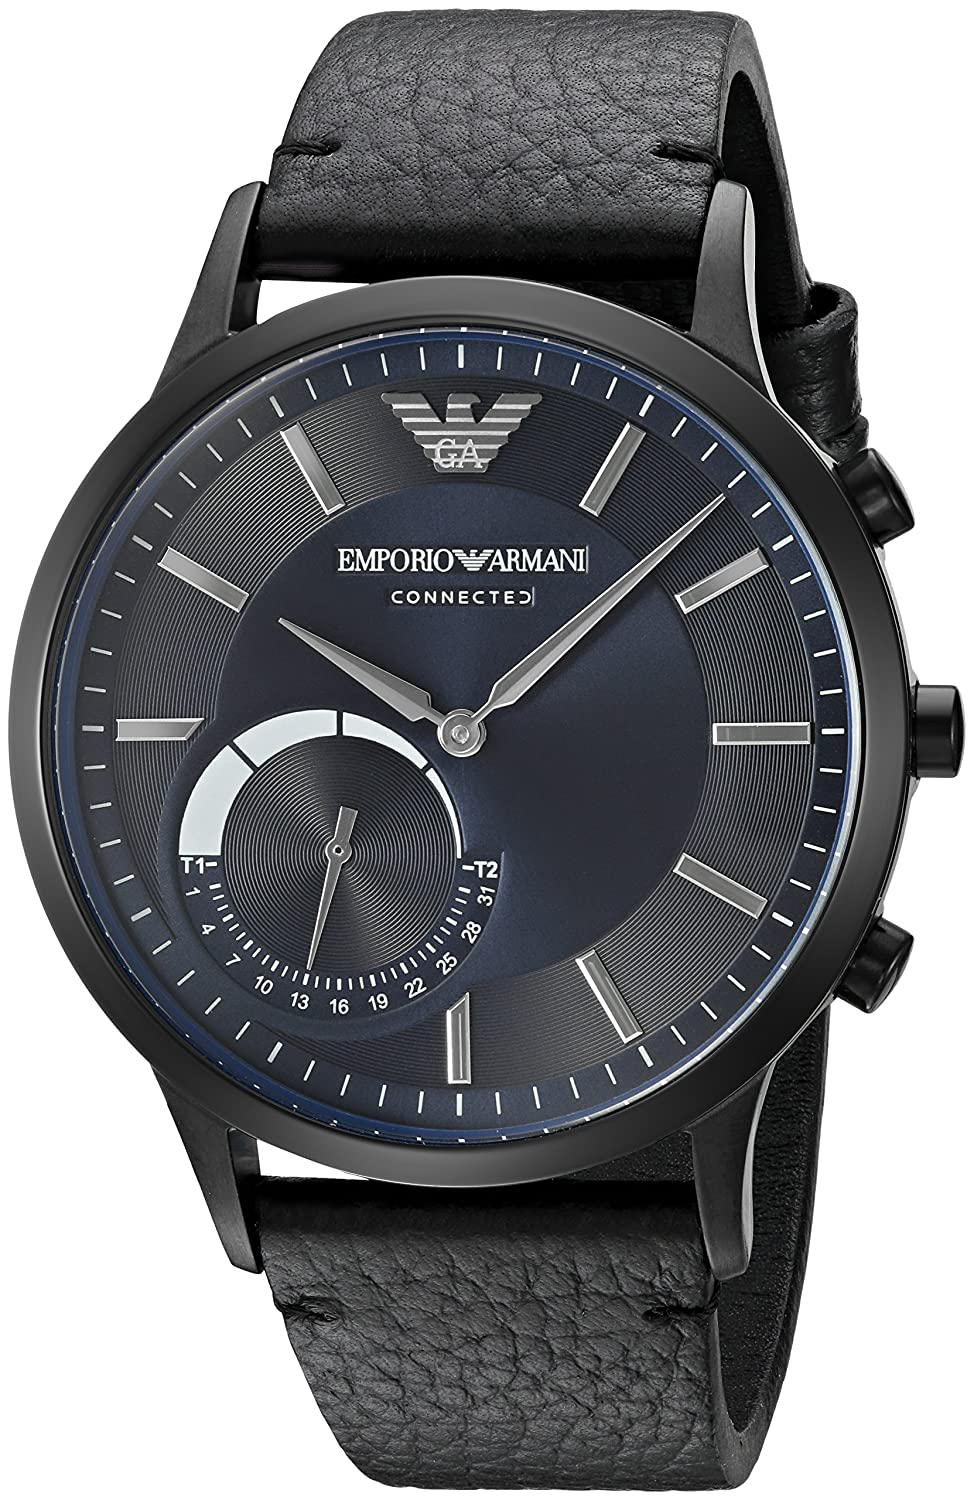 Emporio Armani Men's Connected Hybrid Smartwatch